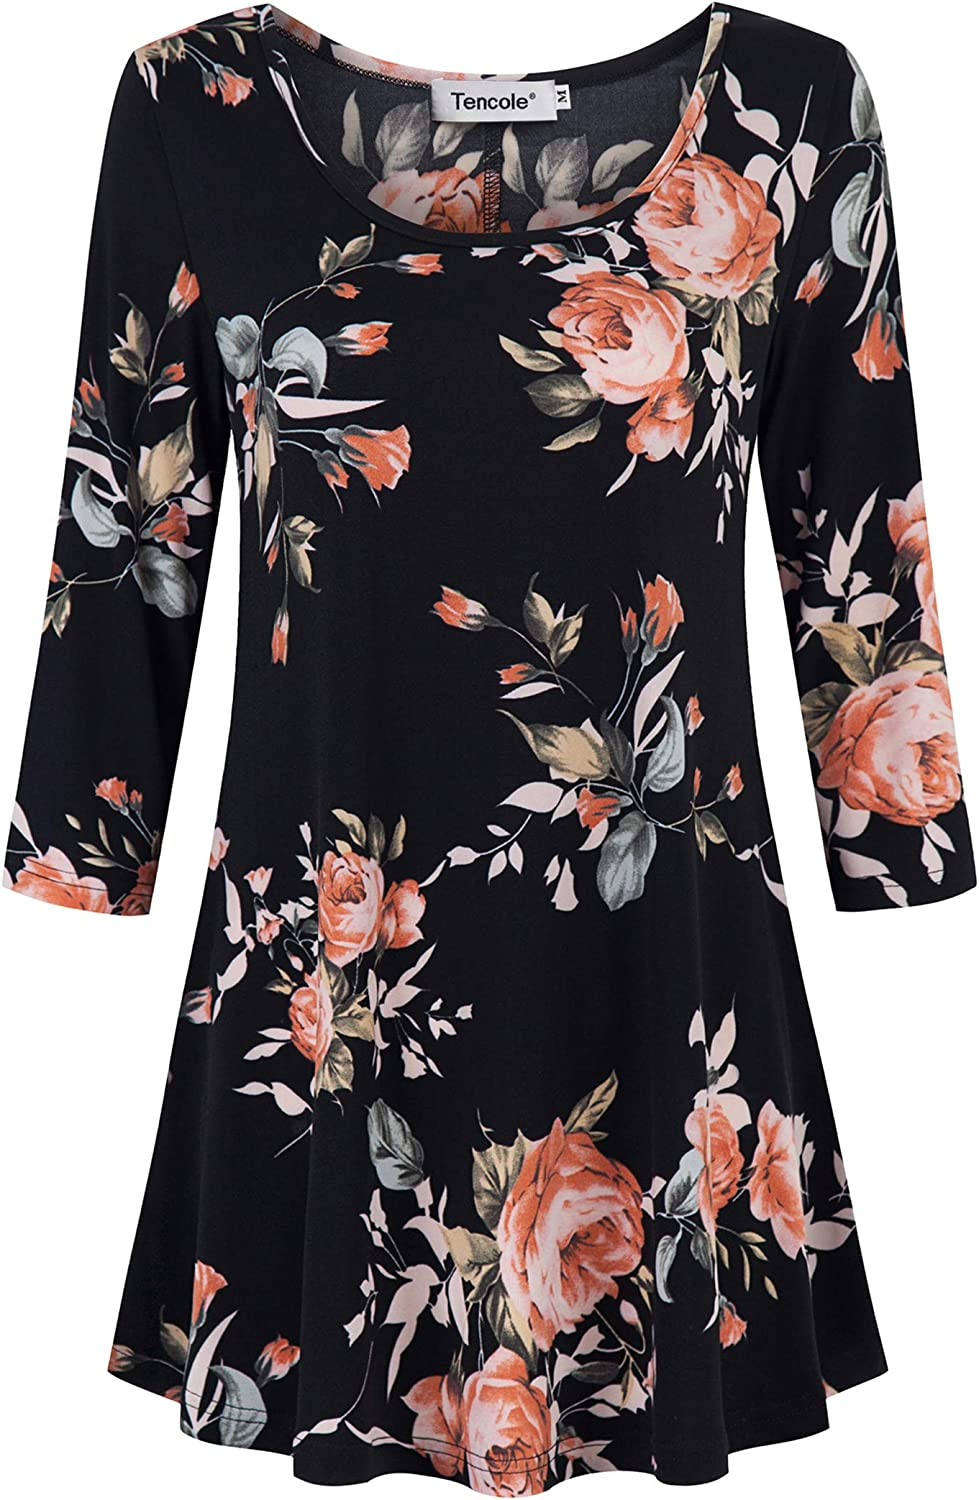 Tencole 8/8 Sleeve Shirts for Women Dressy Tunic Tops Casual Wear with  Floral